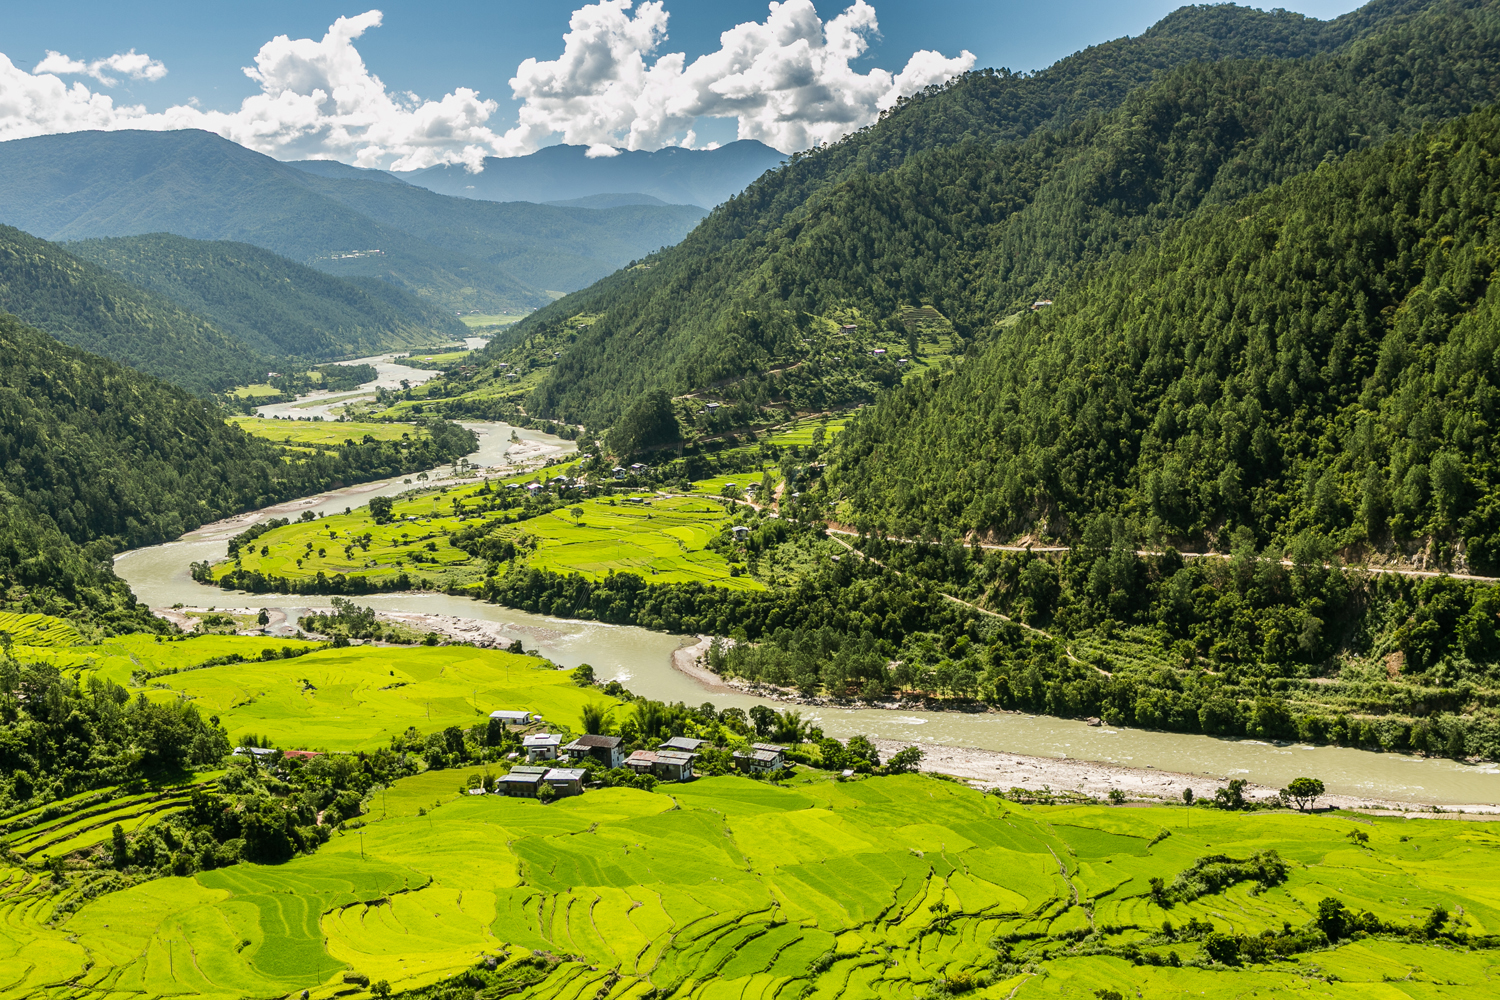 Rice terraces meet the Mo Chhu river in the Punakha-Wangdue valley